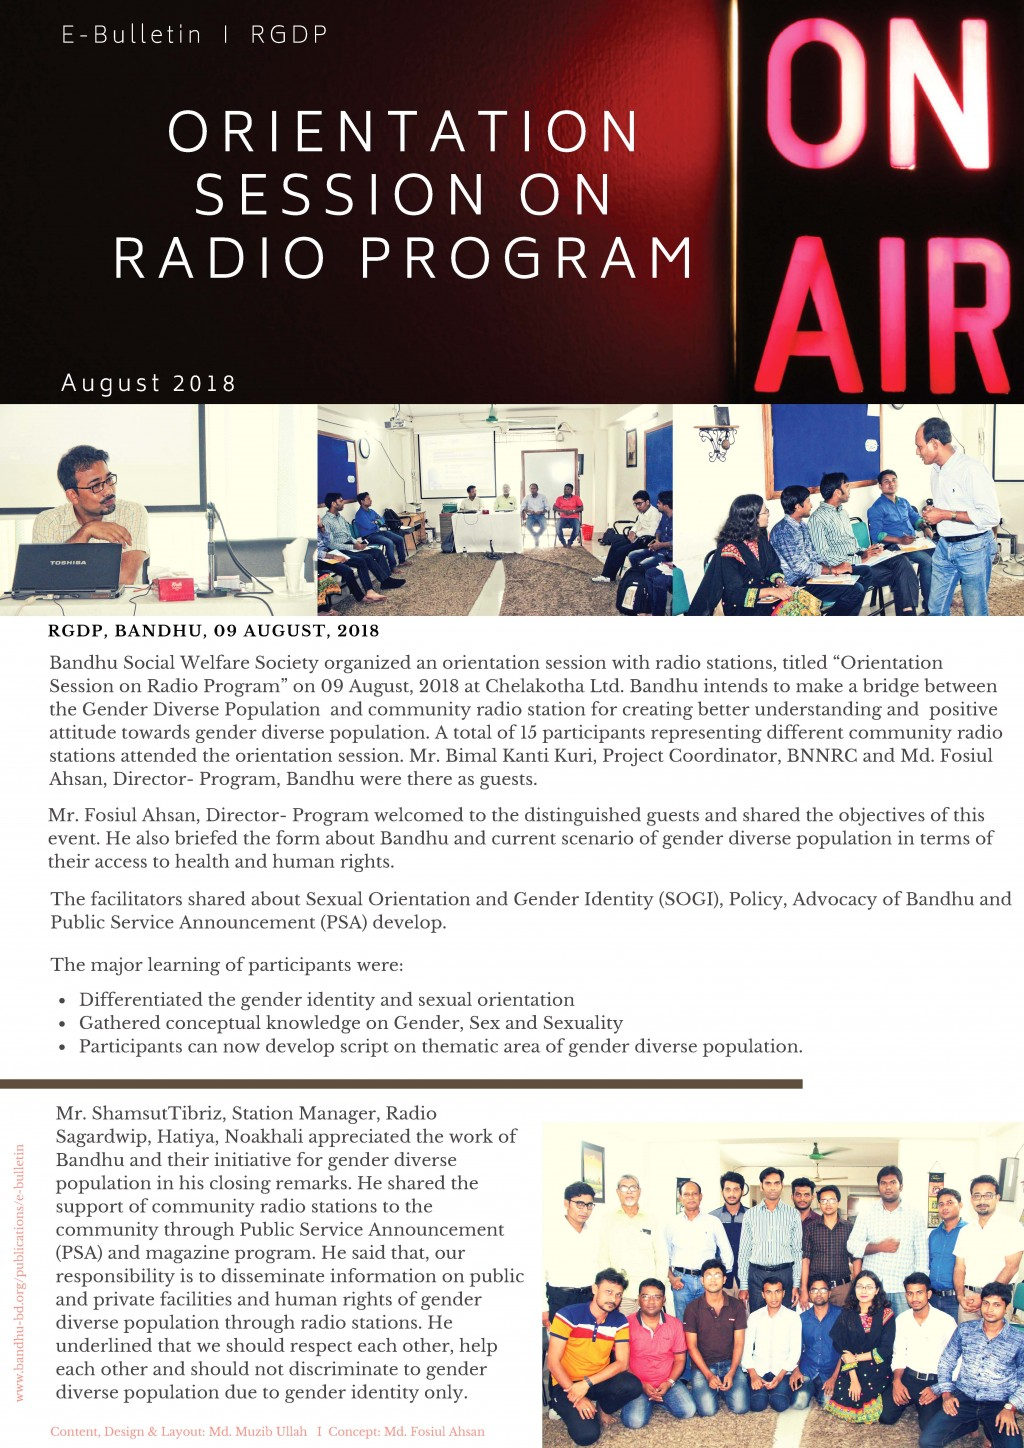 E-Bulletin_Orientation_Radio_Program_03092018